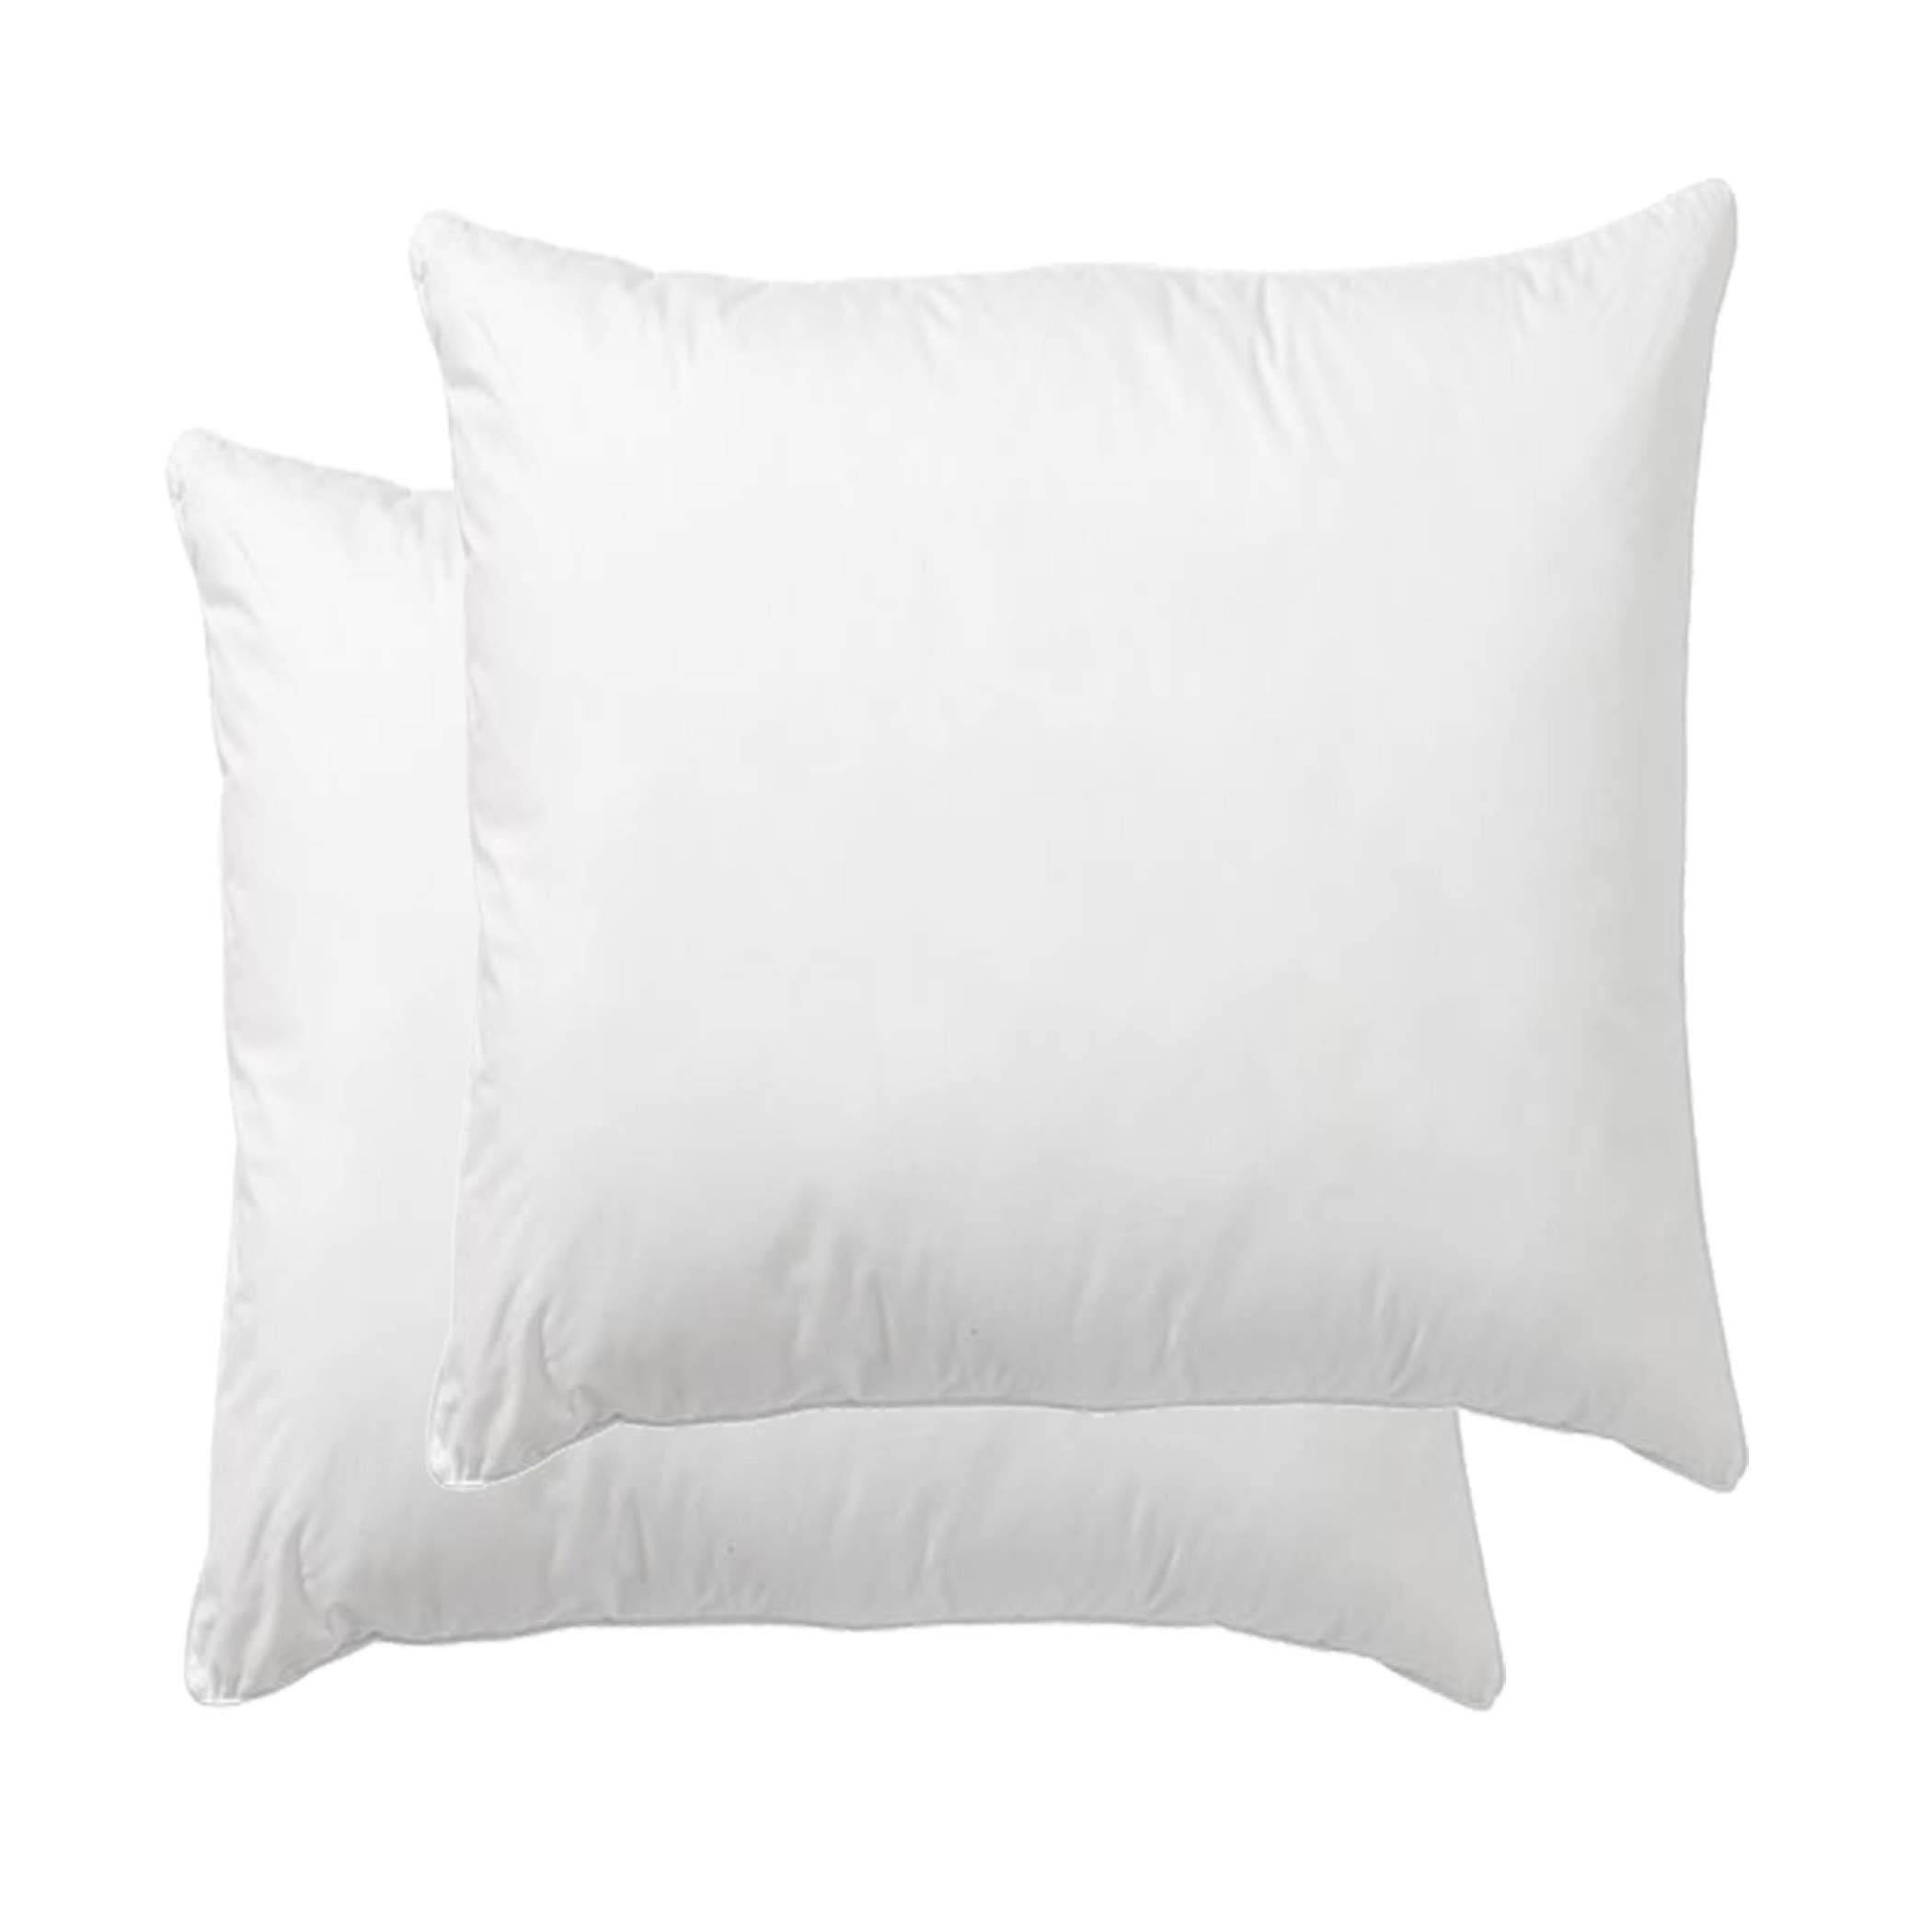 Danmitex Set of 2-18x18-Down Feather Throw Pillow Inserts-Cotton Fabric